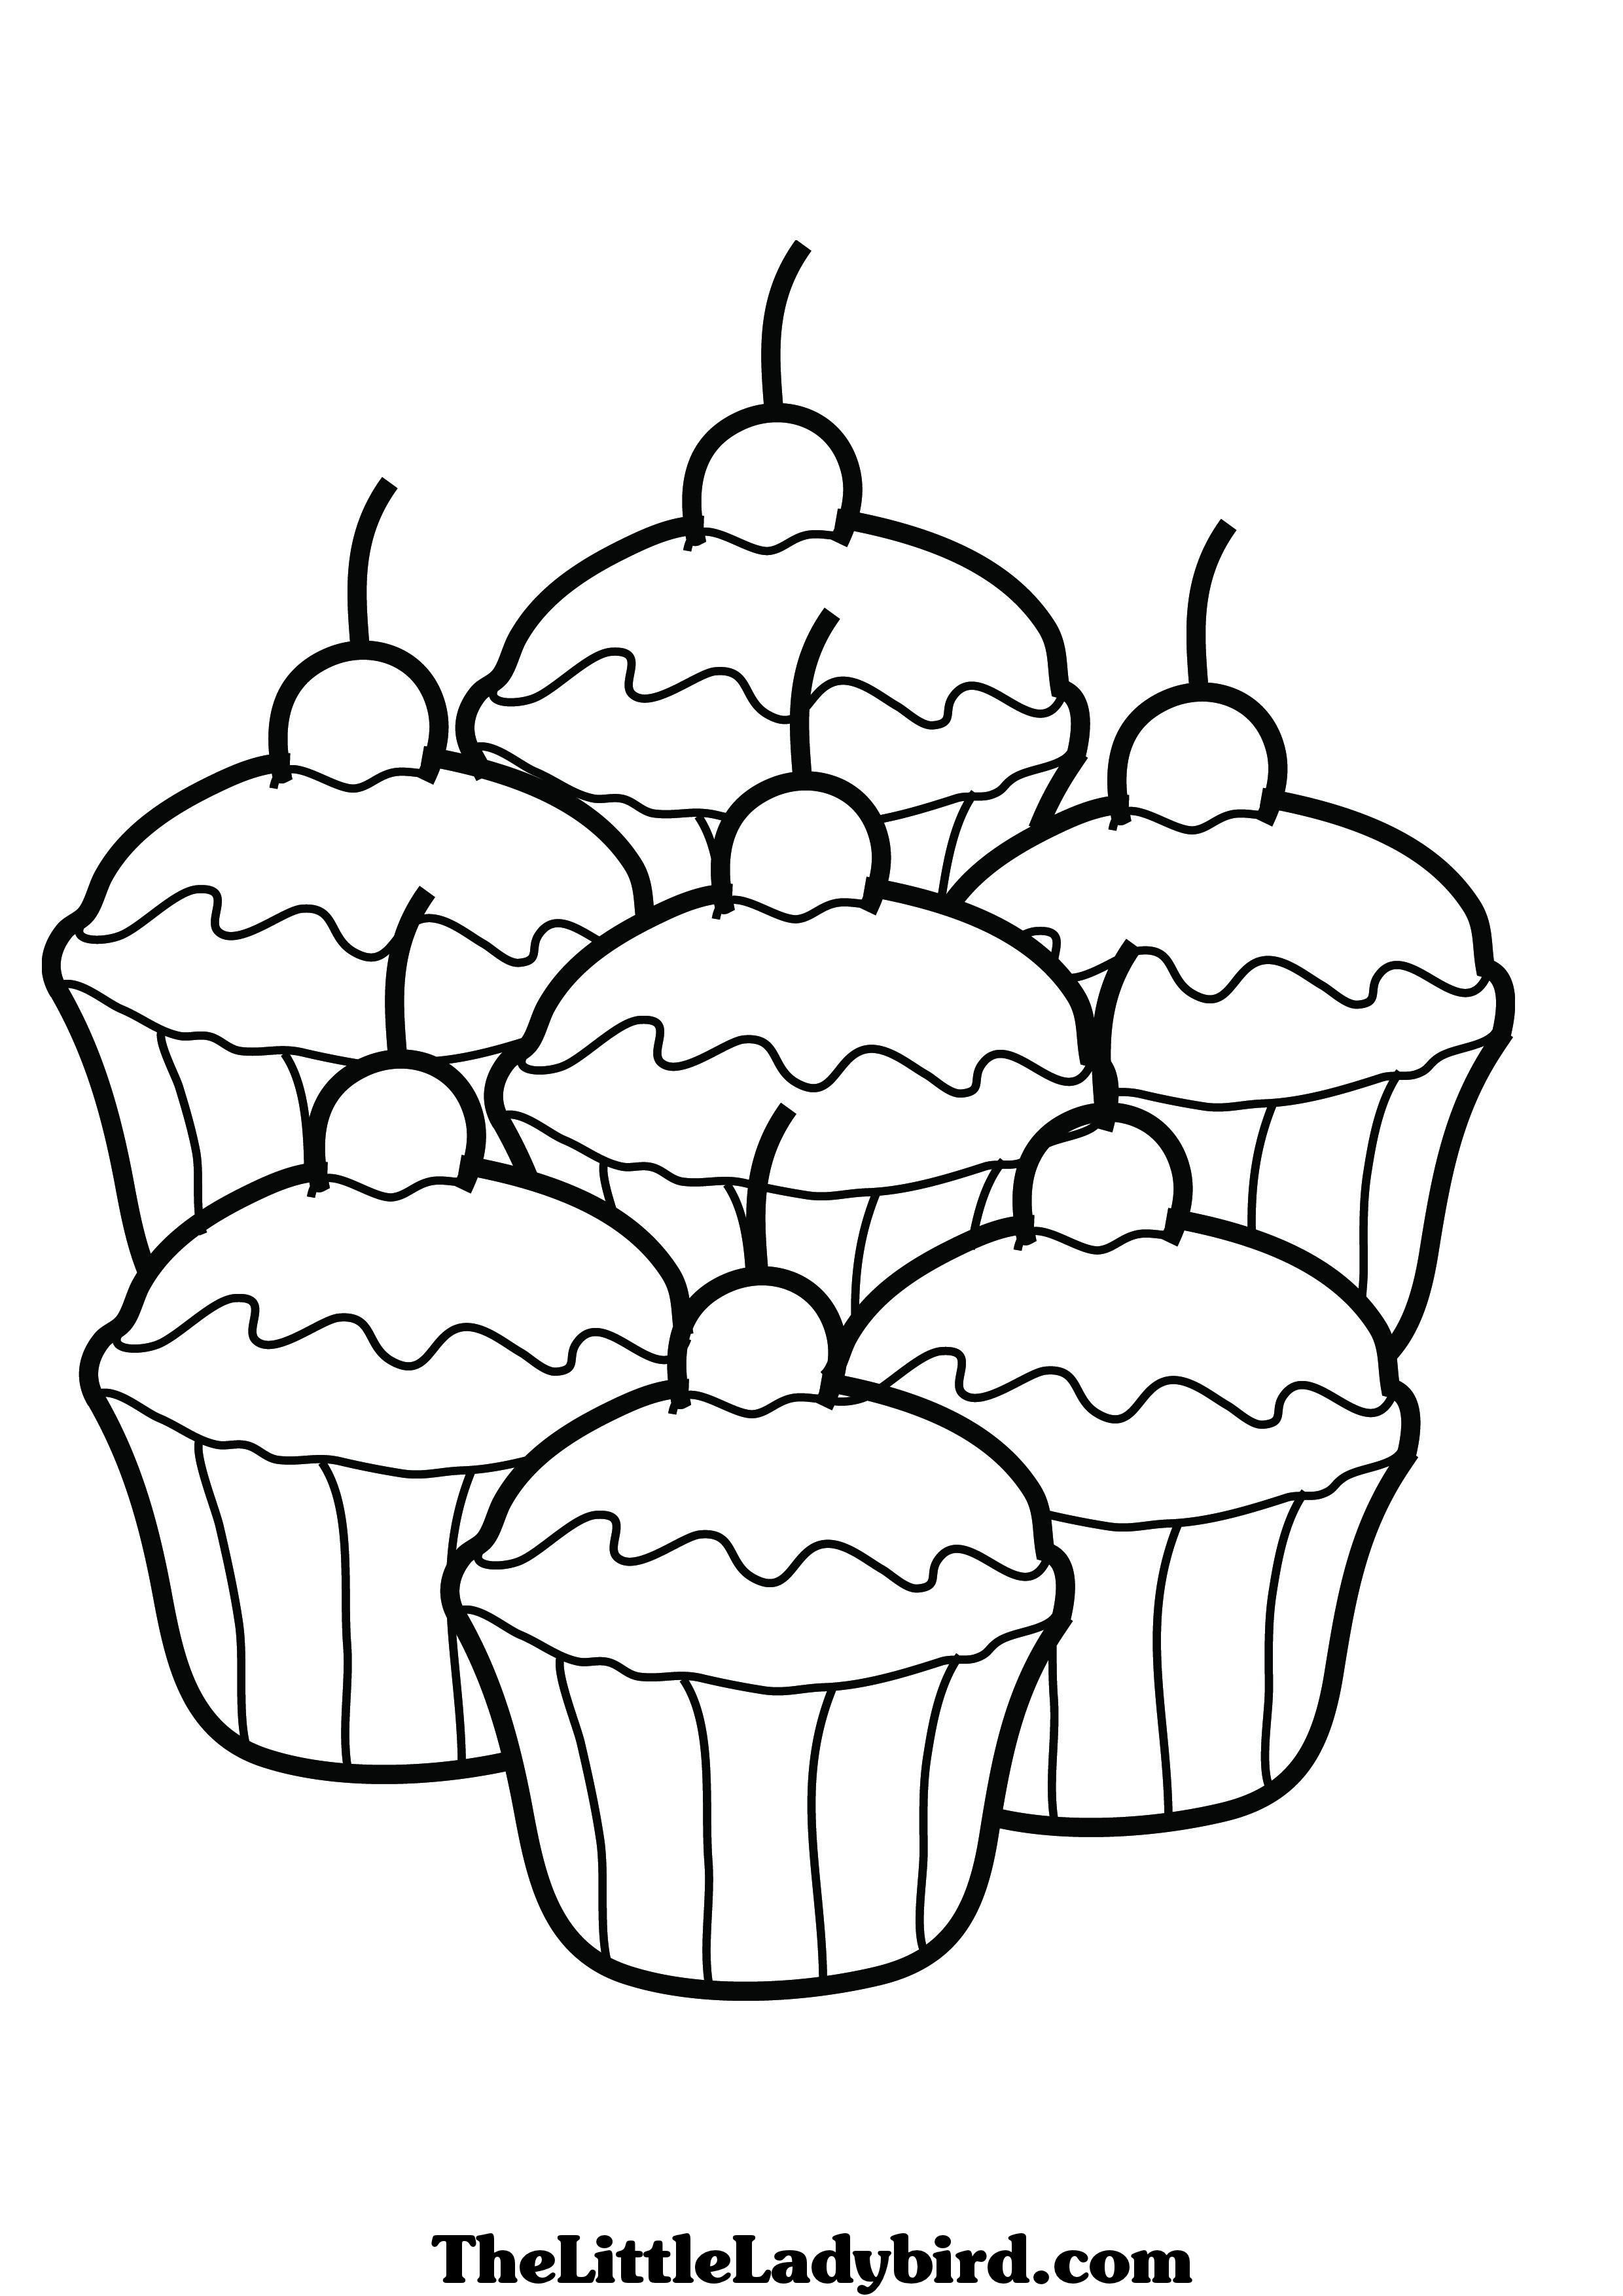 Cupcake Coloring Pages Free Coloring Pages